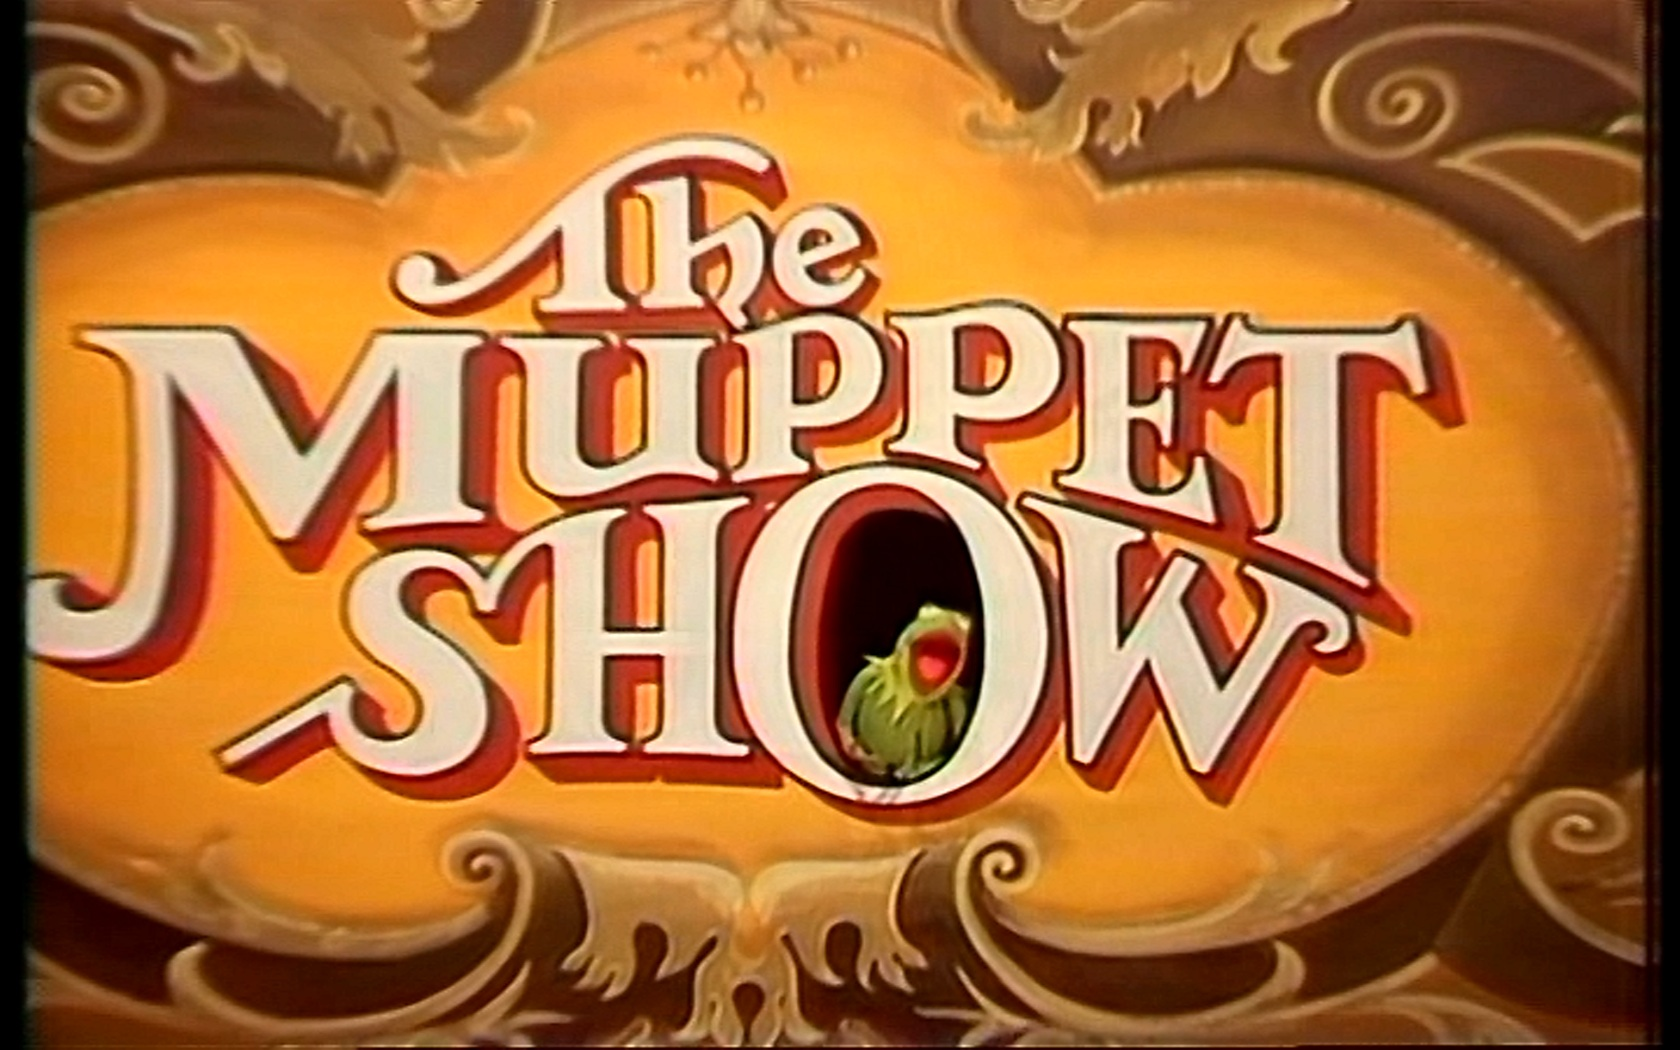 The muppet show fonts